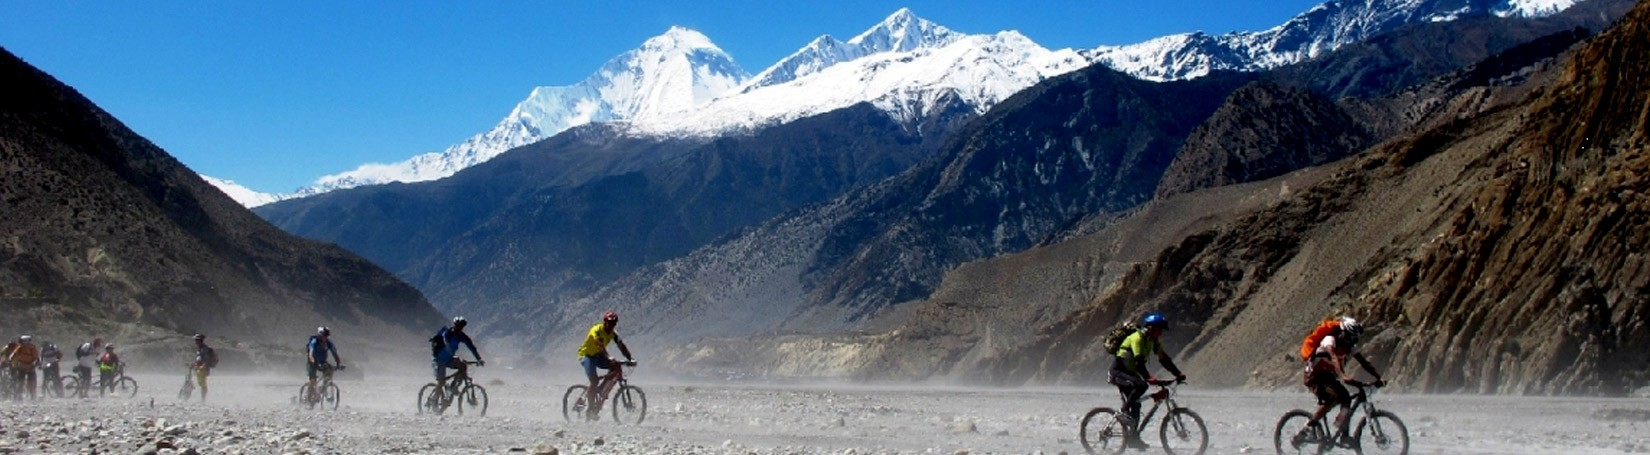 Cycing Annapurna Lower Mustang